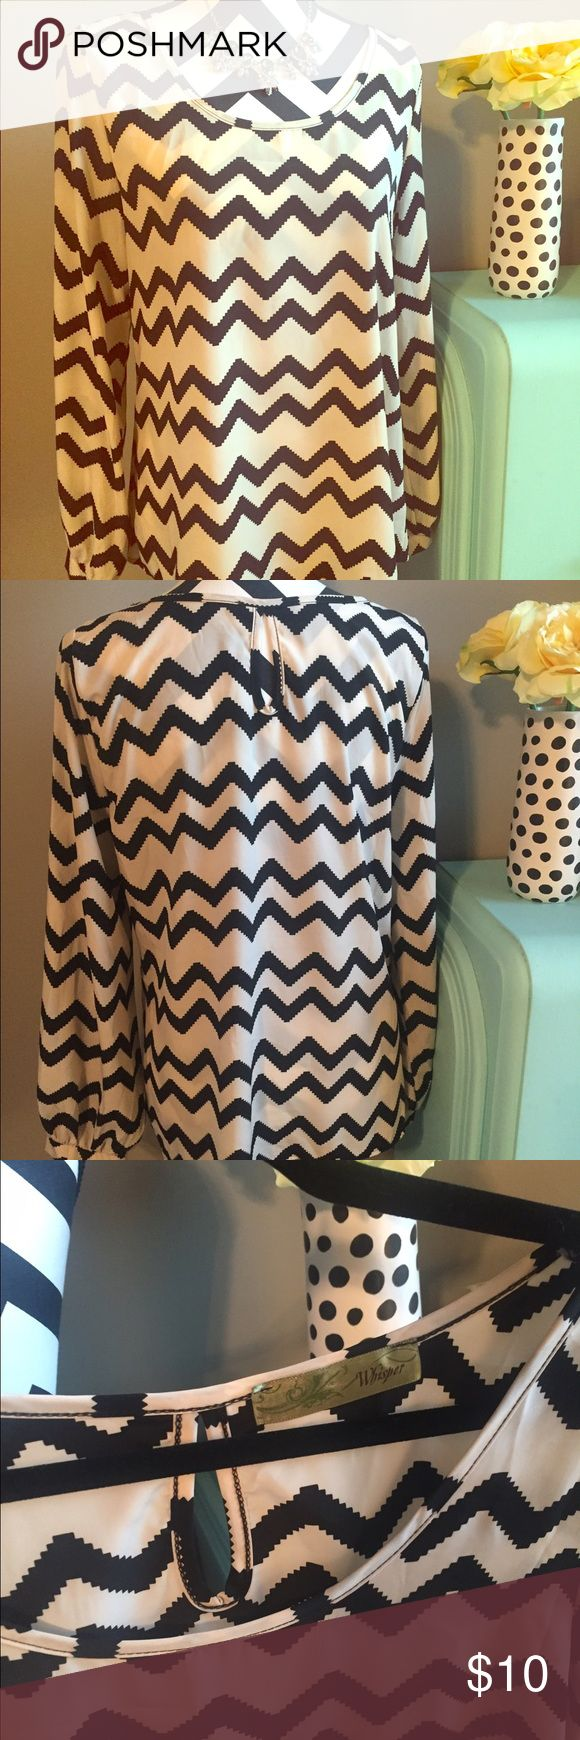 Whisper Chevron Blouse Super cute chevron blouse! Very flowy! Whisper Tops Blouses